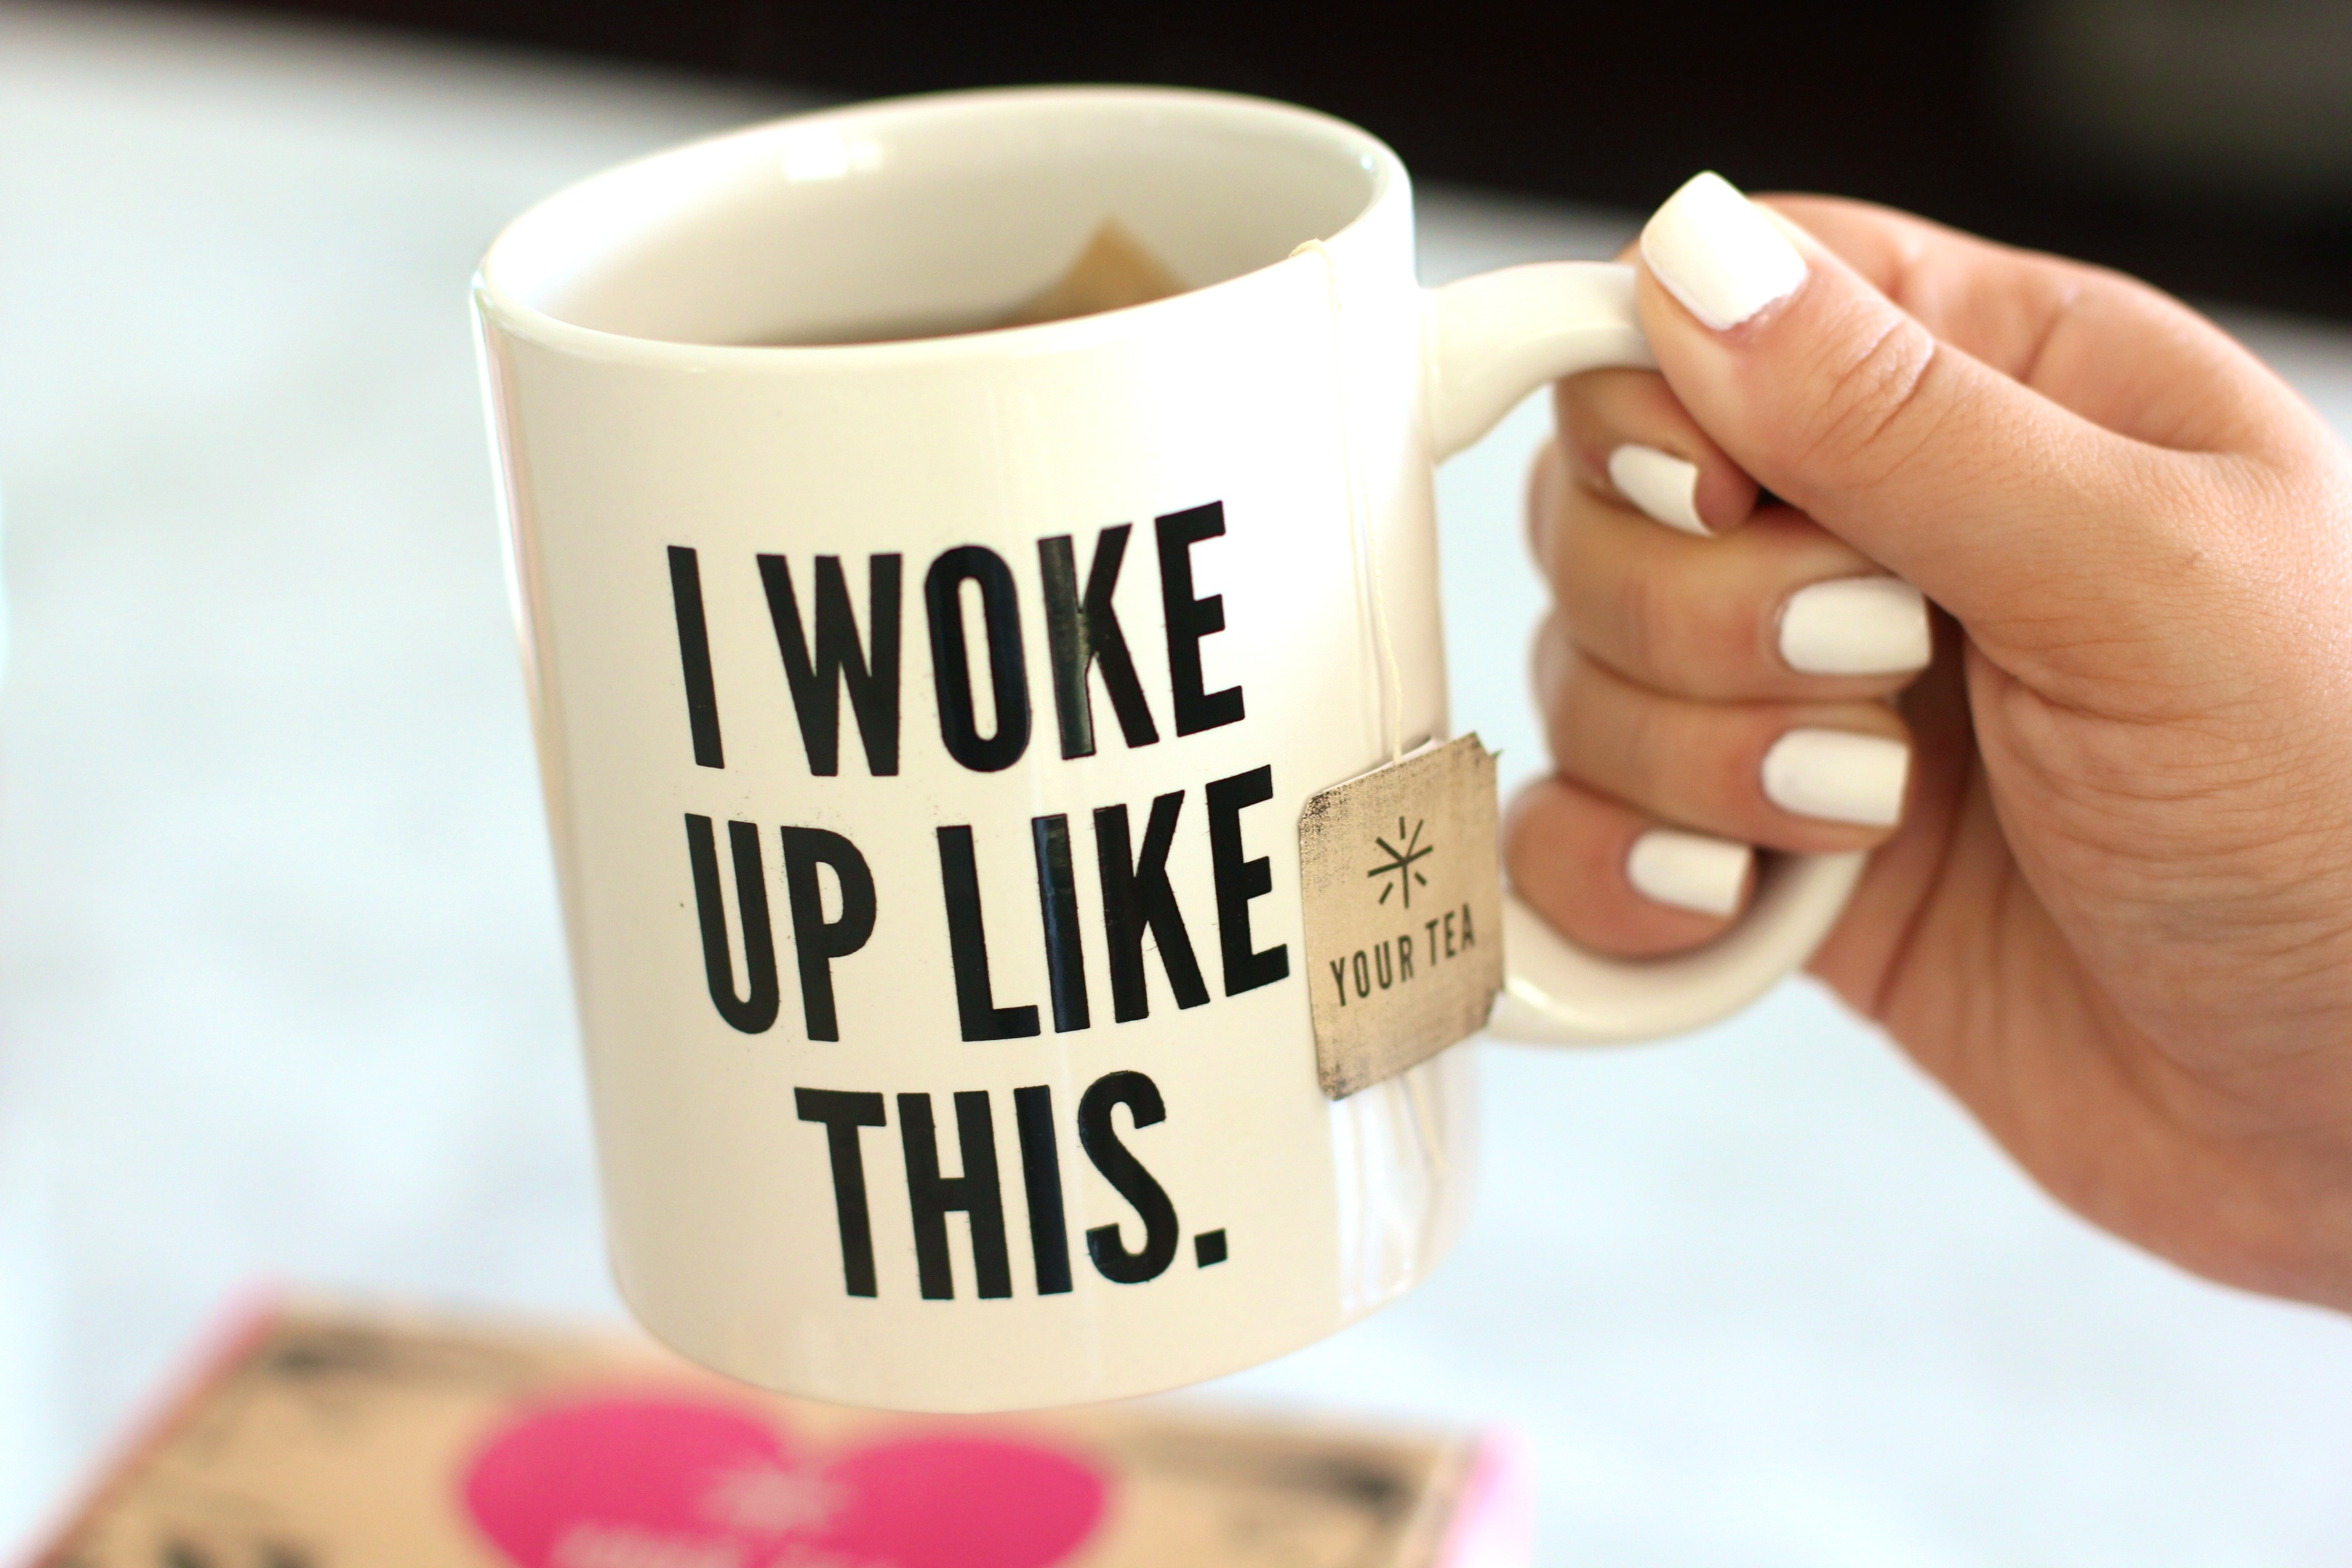 missyonmadison, melissa tierney, fashion blogger, tiny tea tox, your tea, kohls, target skinny jeans, skinny jeans, distressed skinny jeans, ray bans, urban outfitters, tea, mug, quote mugs, i woke up like this mug, vera bradley napkins, brunette hair,